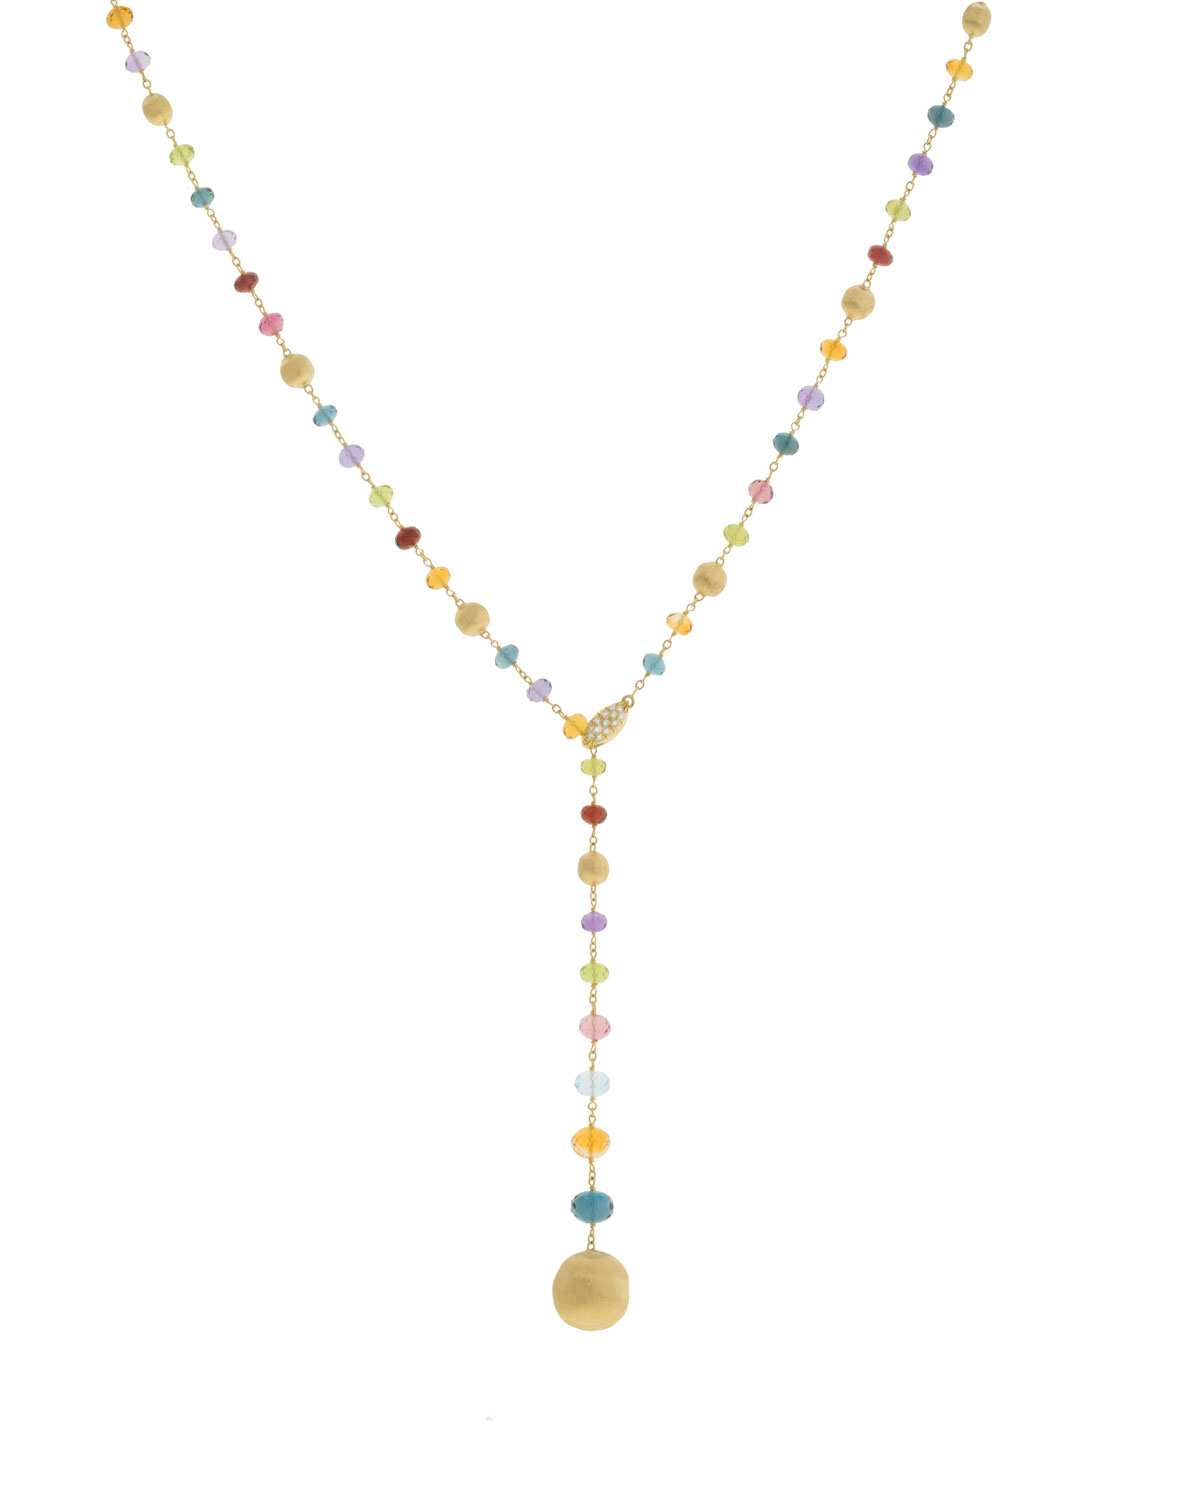 Marco Bicego Africa 18k Gold Diamond & Gem Lariat Necklace